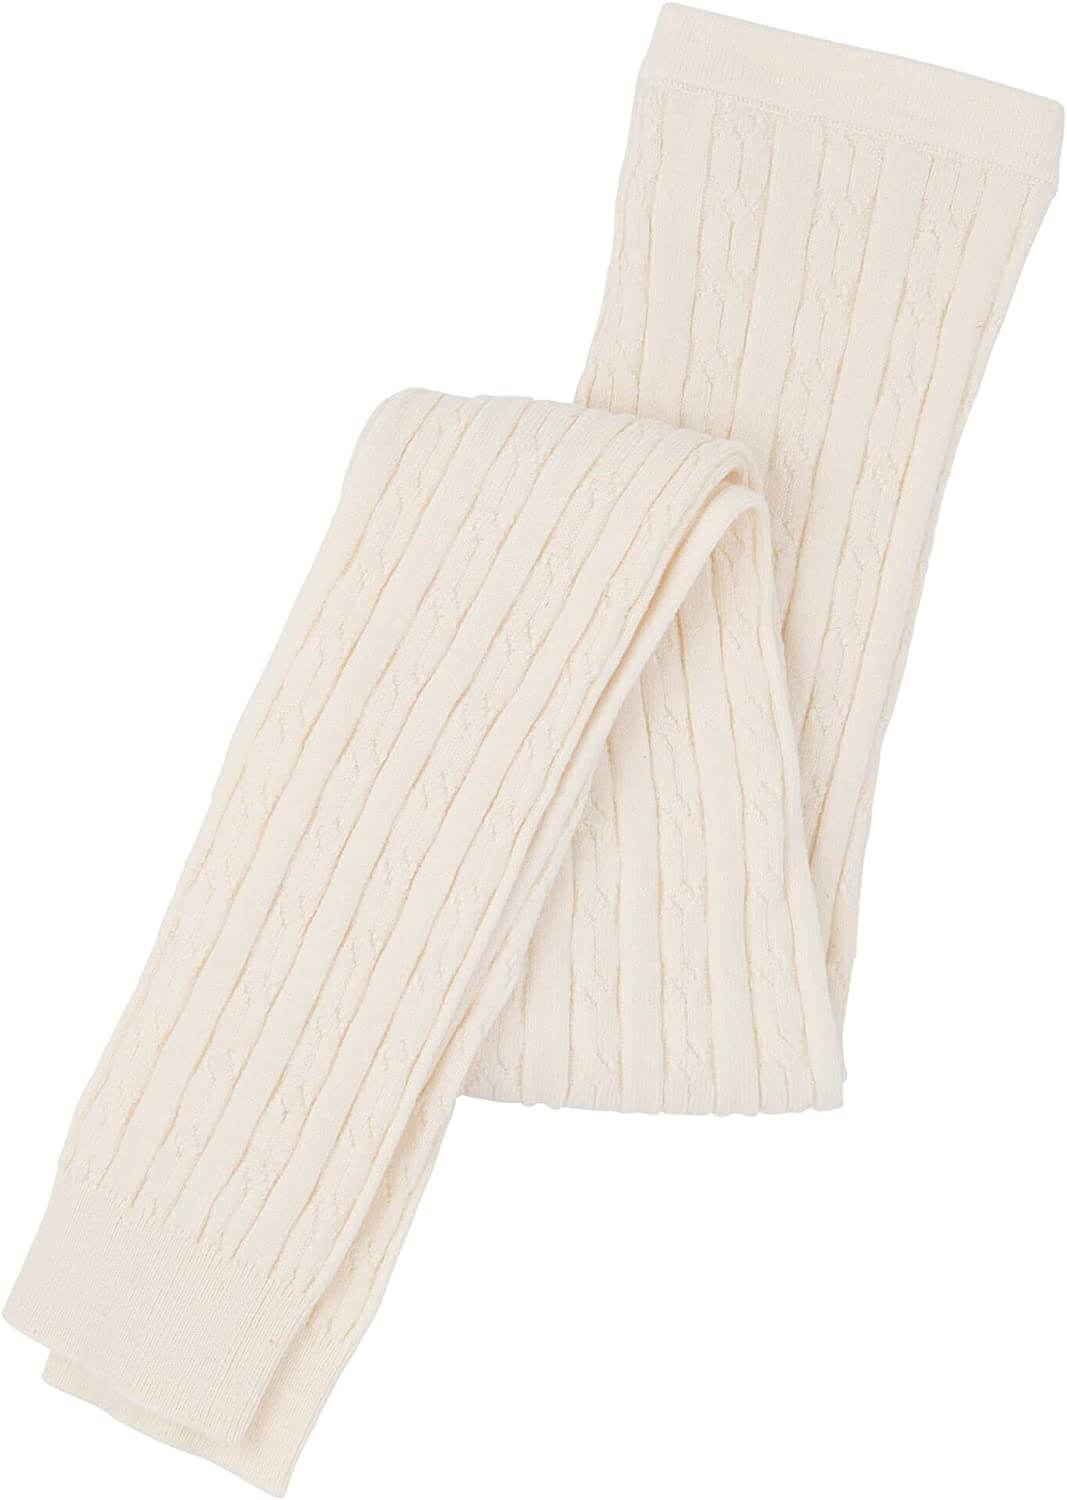 Hatley cream cable tights - The Mango Tree